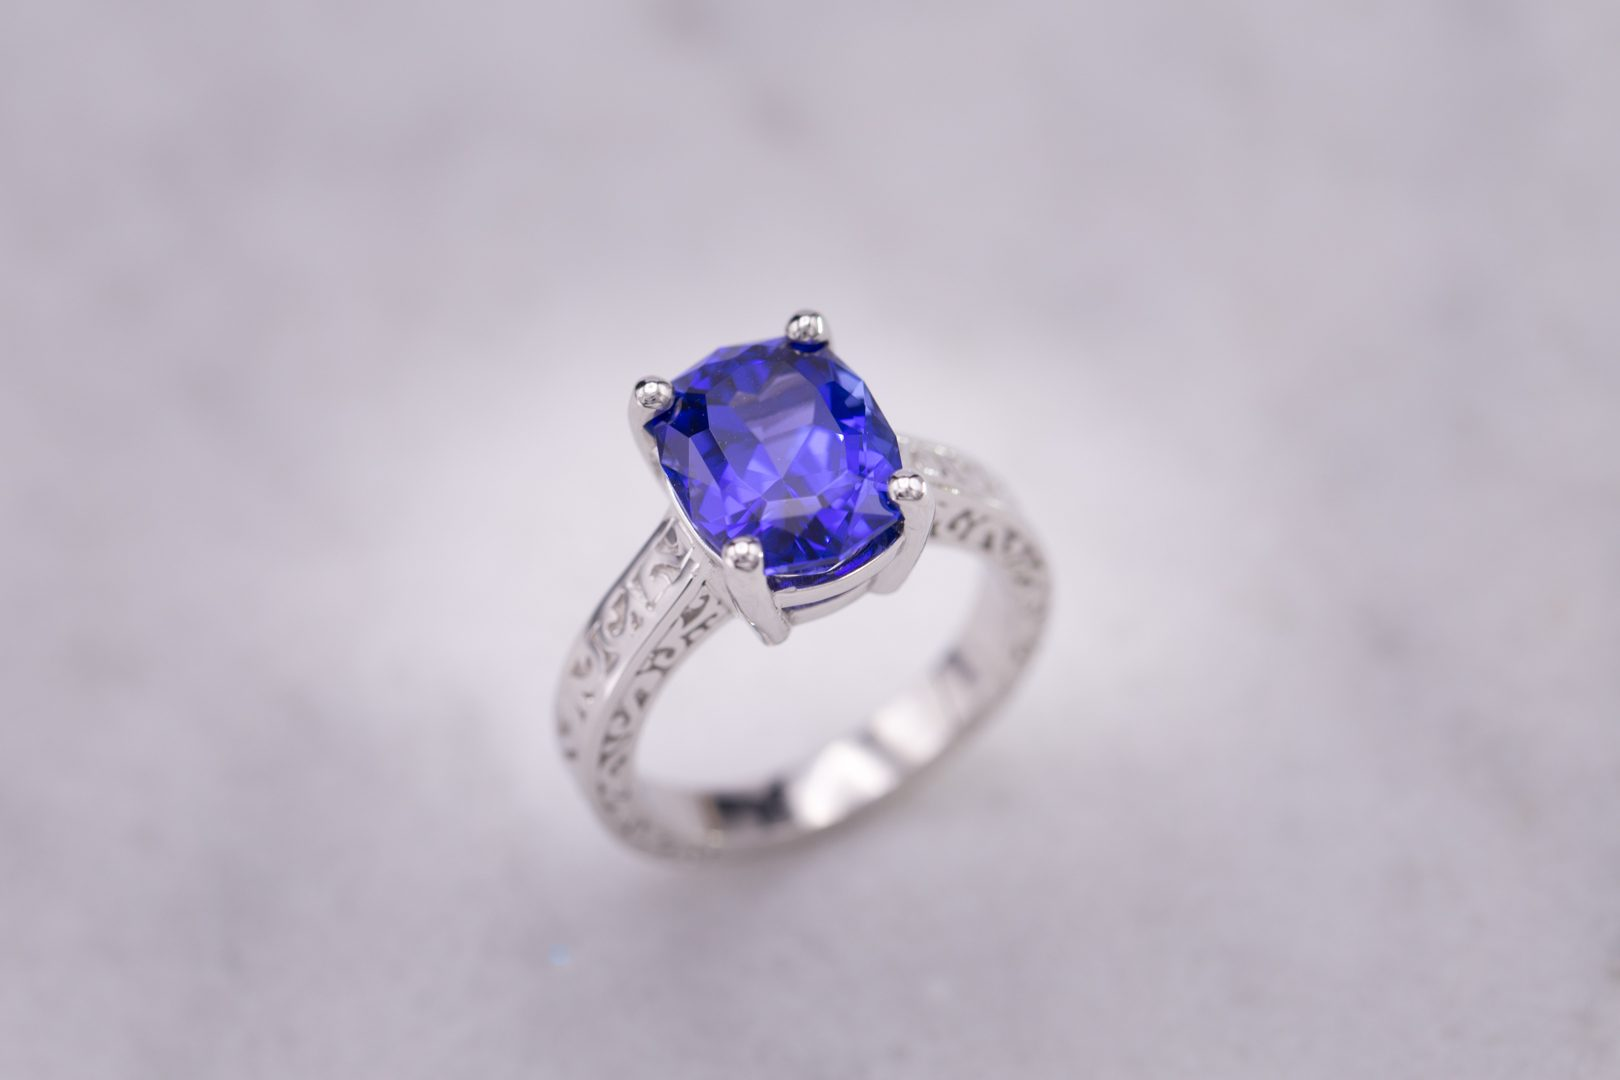 mined enamel earth size one aaa tanzanite ring itm silver feb thumb sterling peacock gems